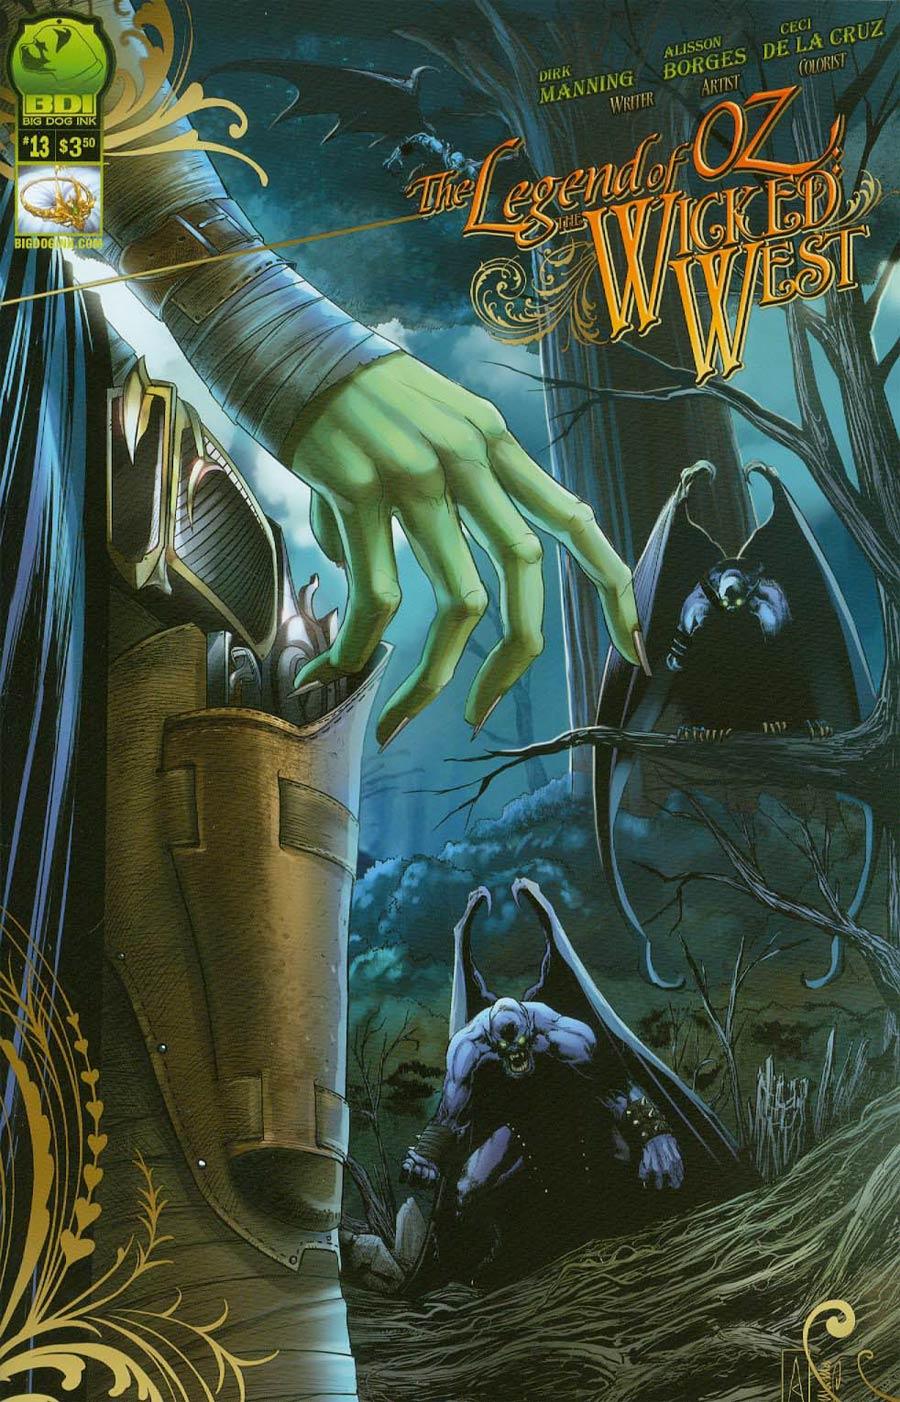 Legend Of Oz The Wicked West Vol 2 #13 Cover A Alisson Borges